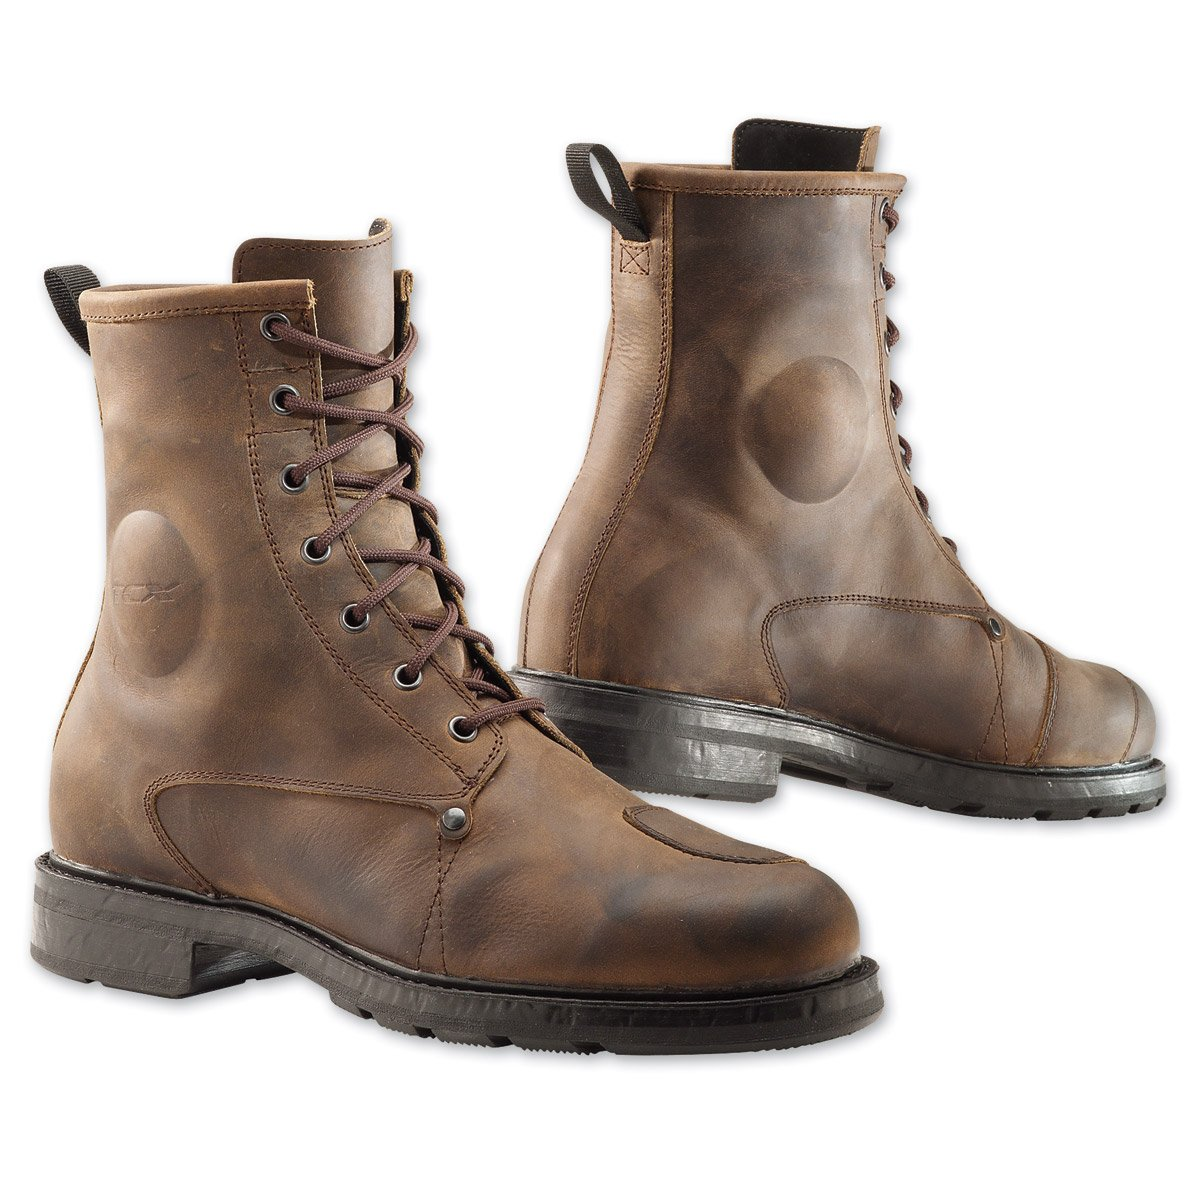 brown TCX X-Blend waterproof boots